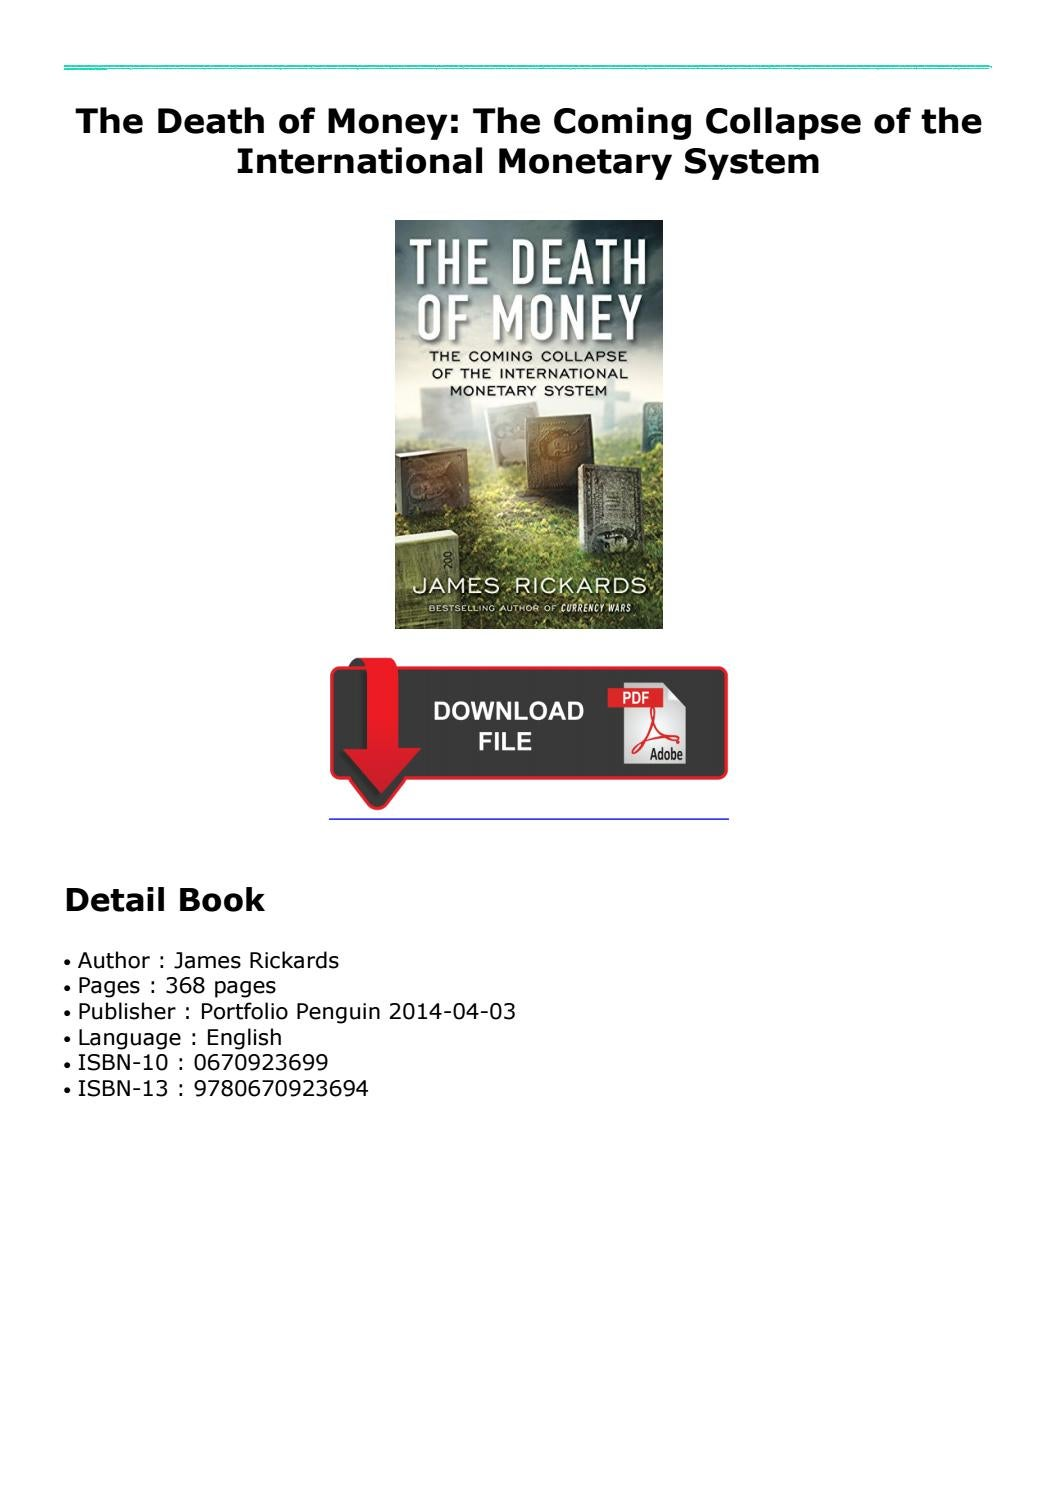 (Discount Off) The Death of Money: The Coming Collapse of the International  Monetary System by nando1921 - issuu